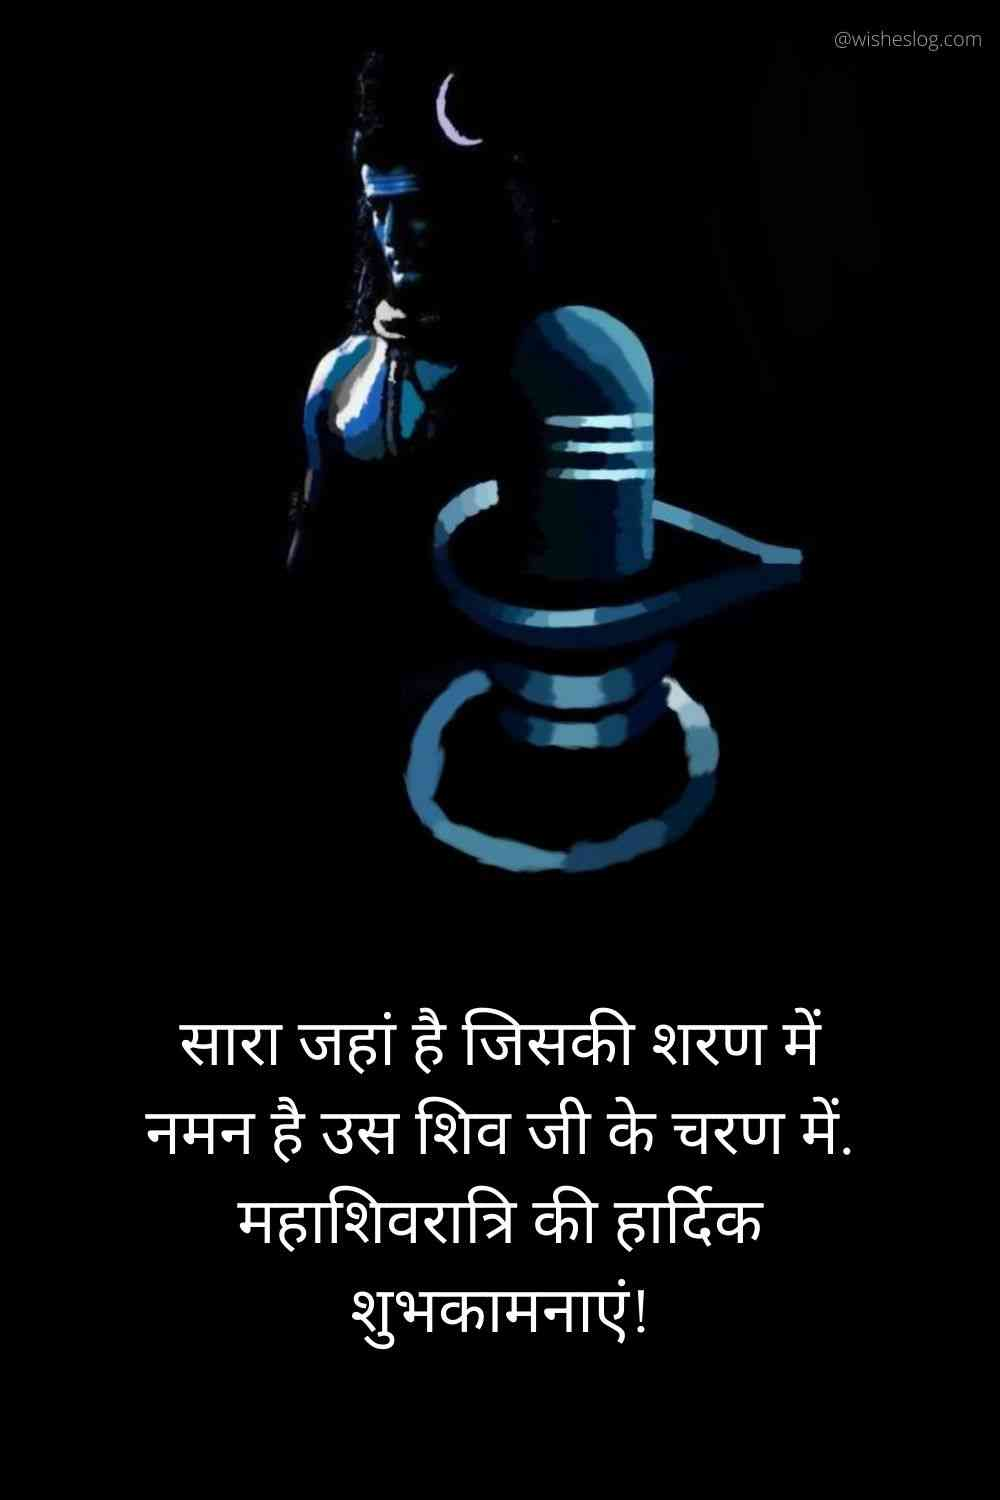 mahashivratri images in hindi